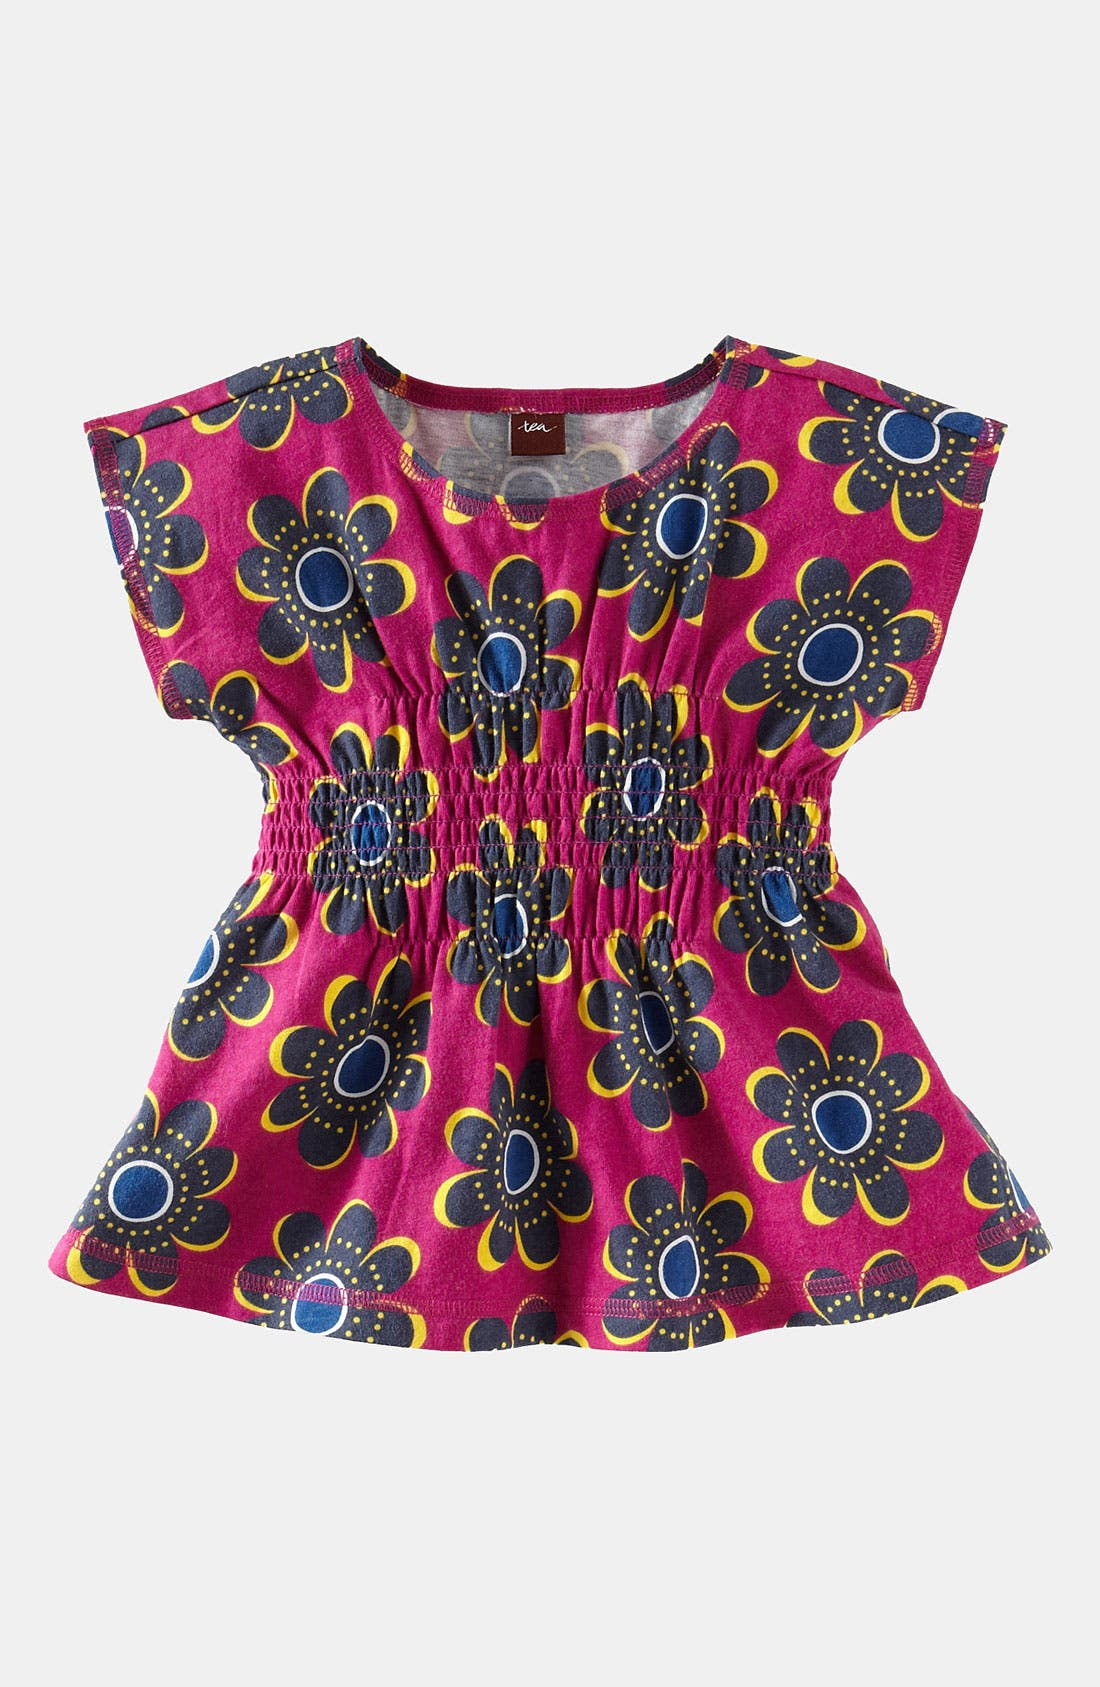 Alternate Image 1 Selected - Tea Collection 'Rosebank' Smocked Top (Little Girls & Big Girls)